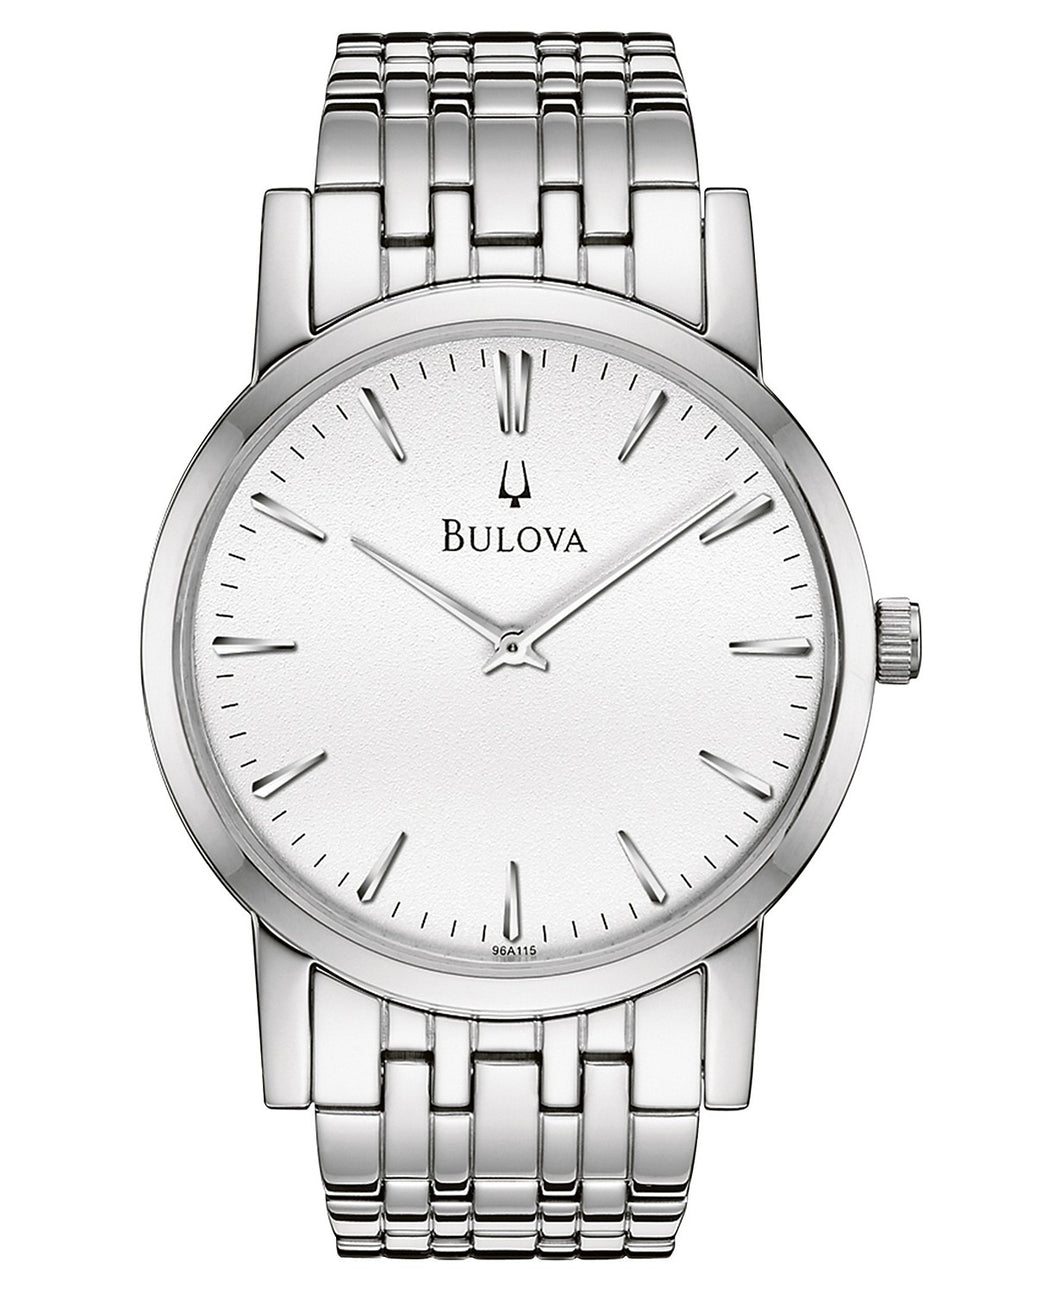 Bulova Casual Men's Watch